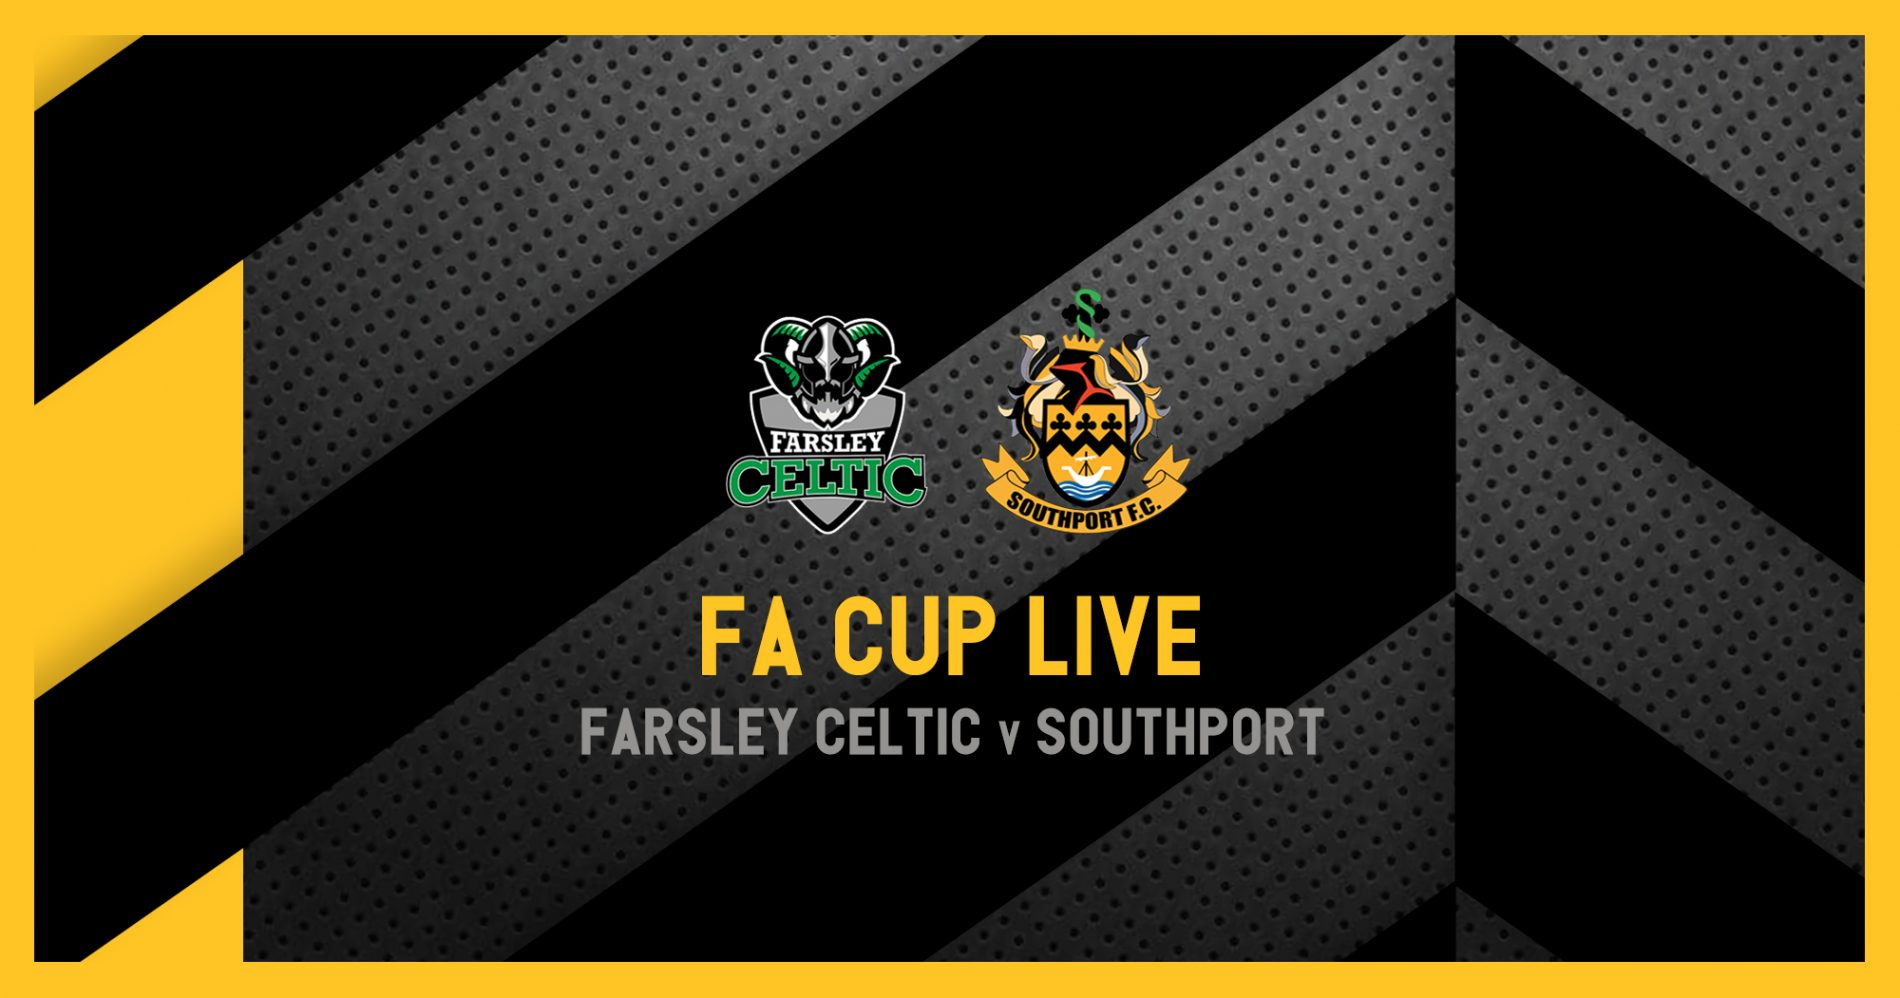 MATCHDAY LIVE | Farsley Celtic v Southport